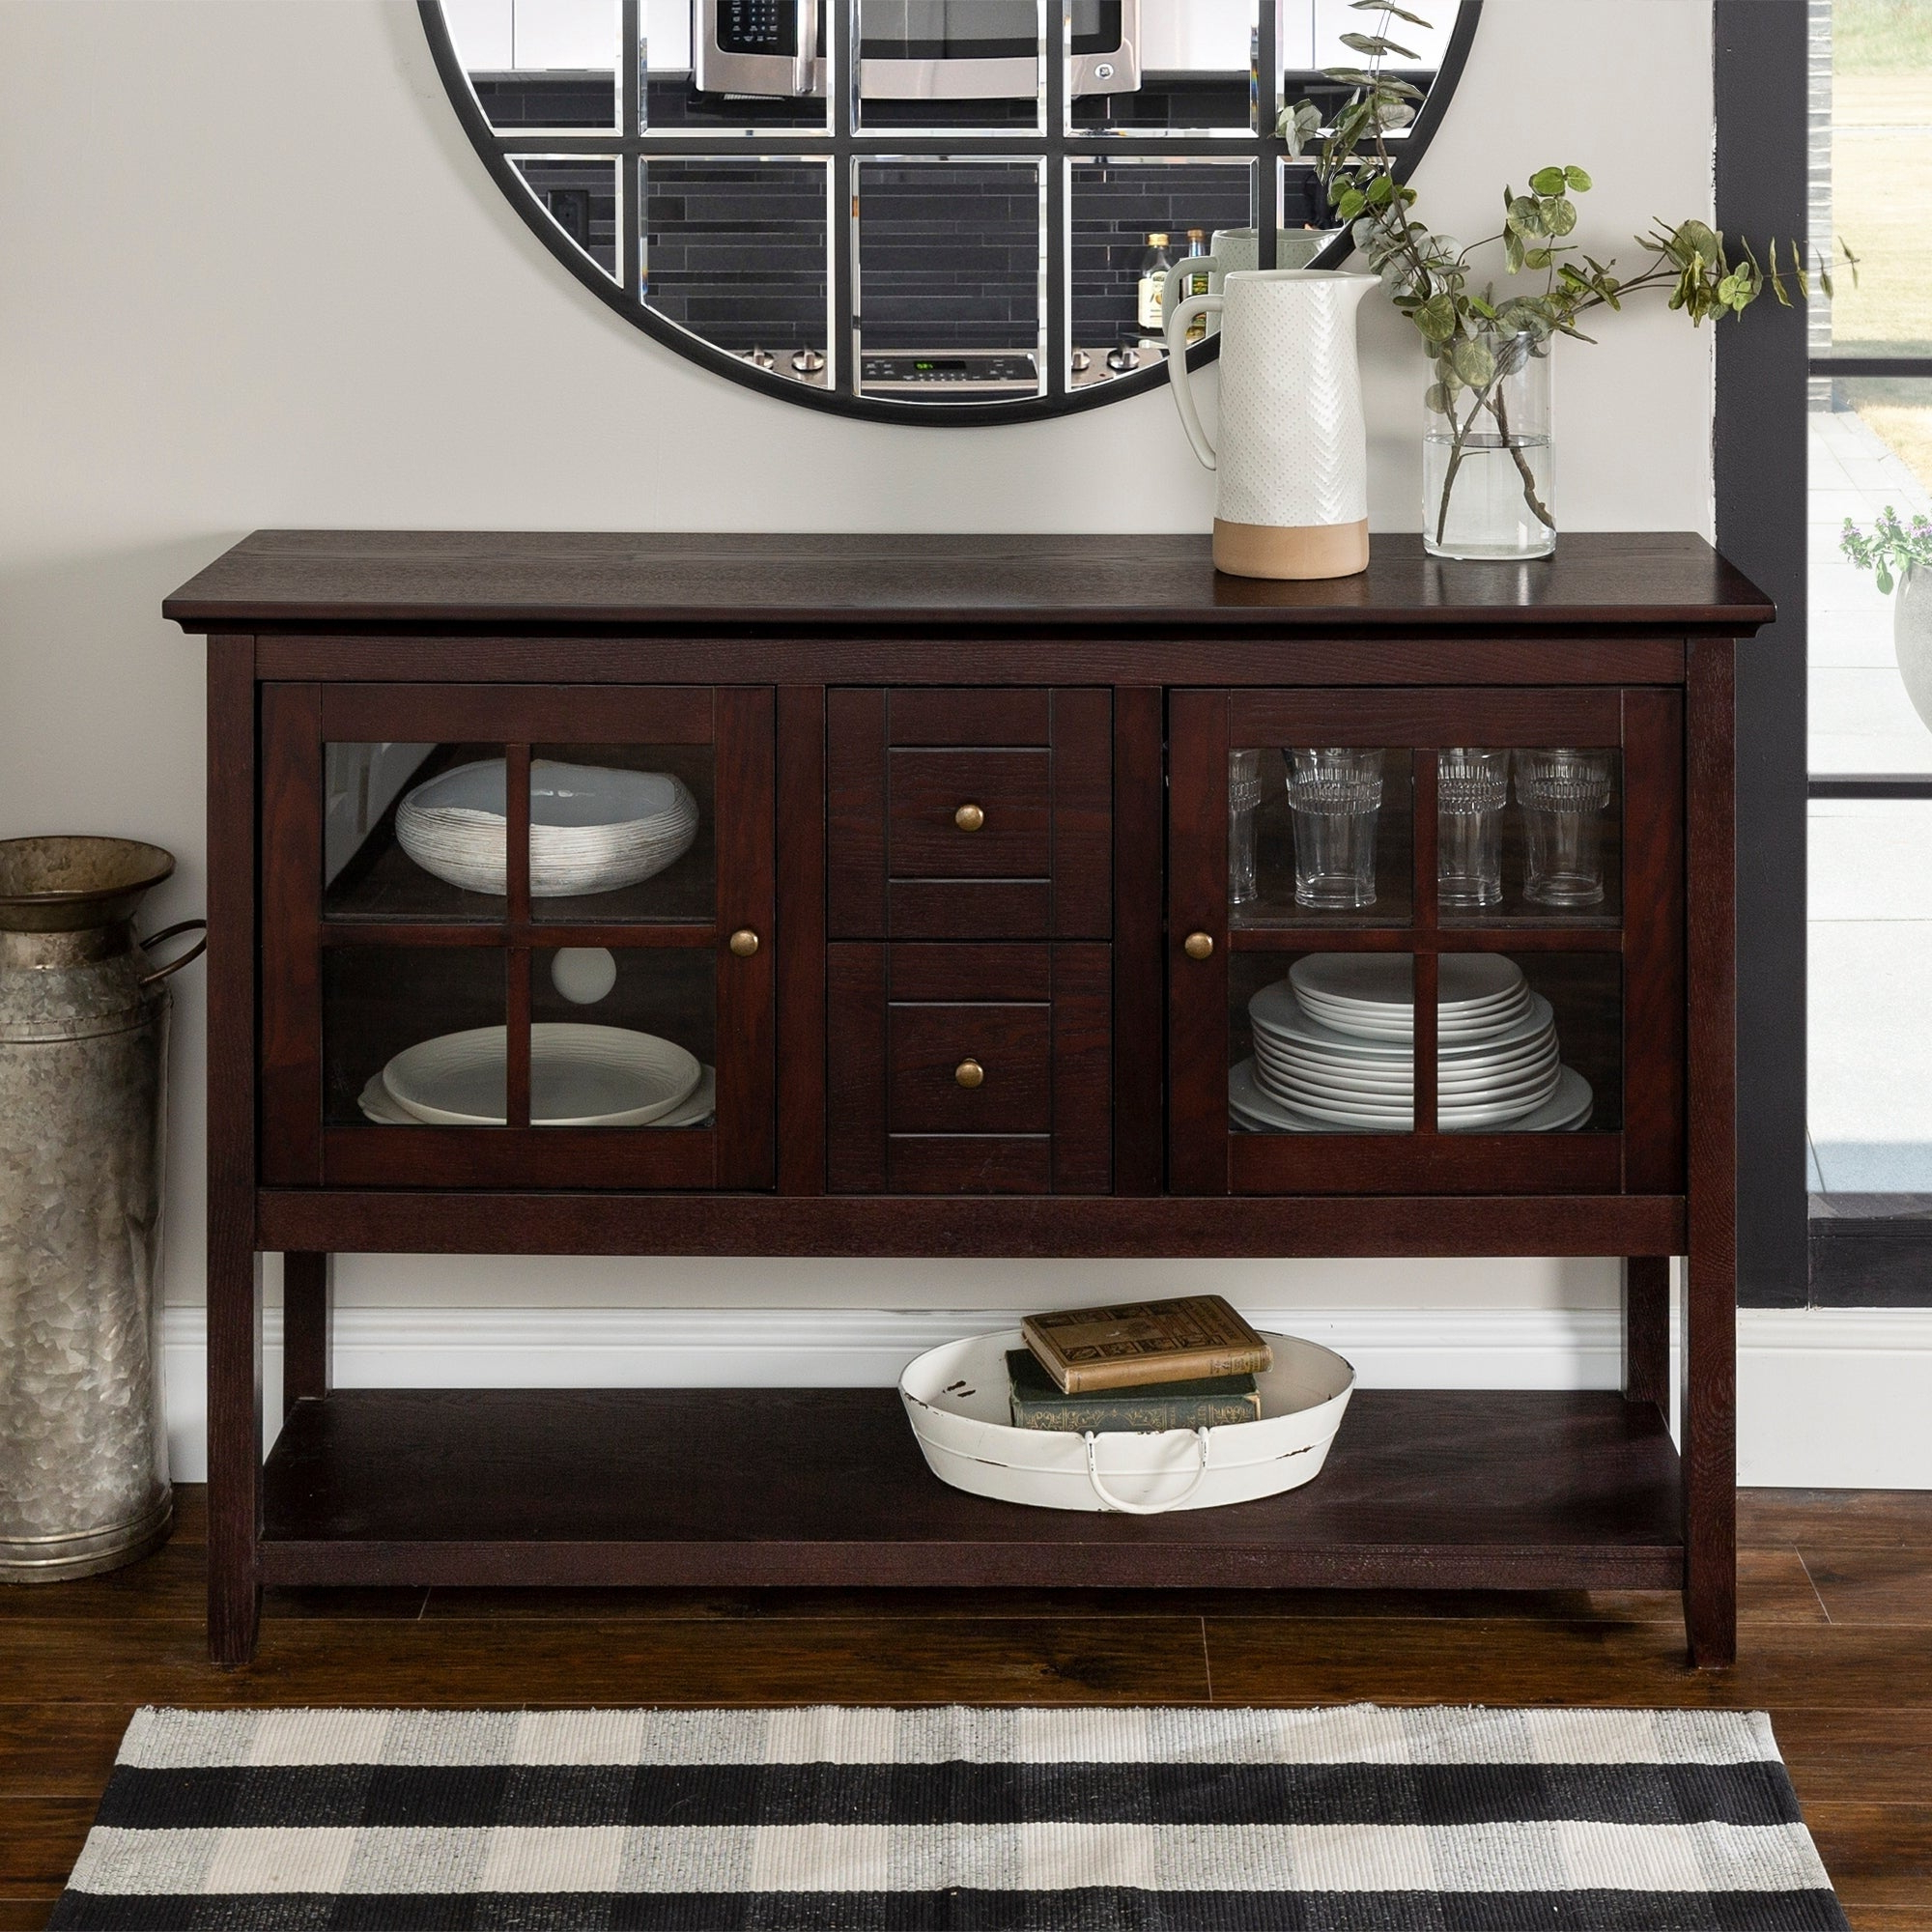 Middlebrook Designs 52 Inch Buffet Cabinet, Espresso, Tv Stand Console,  Entertainment Center – 54 X 16 X 35H Inside Contemporary Espresso 2 Cabinet Dining Buffets (View 19 of 20)